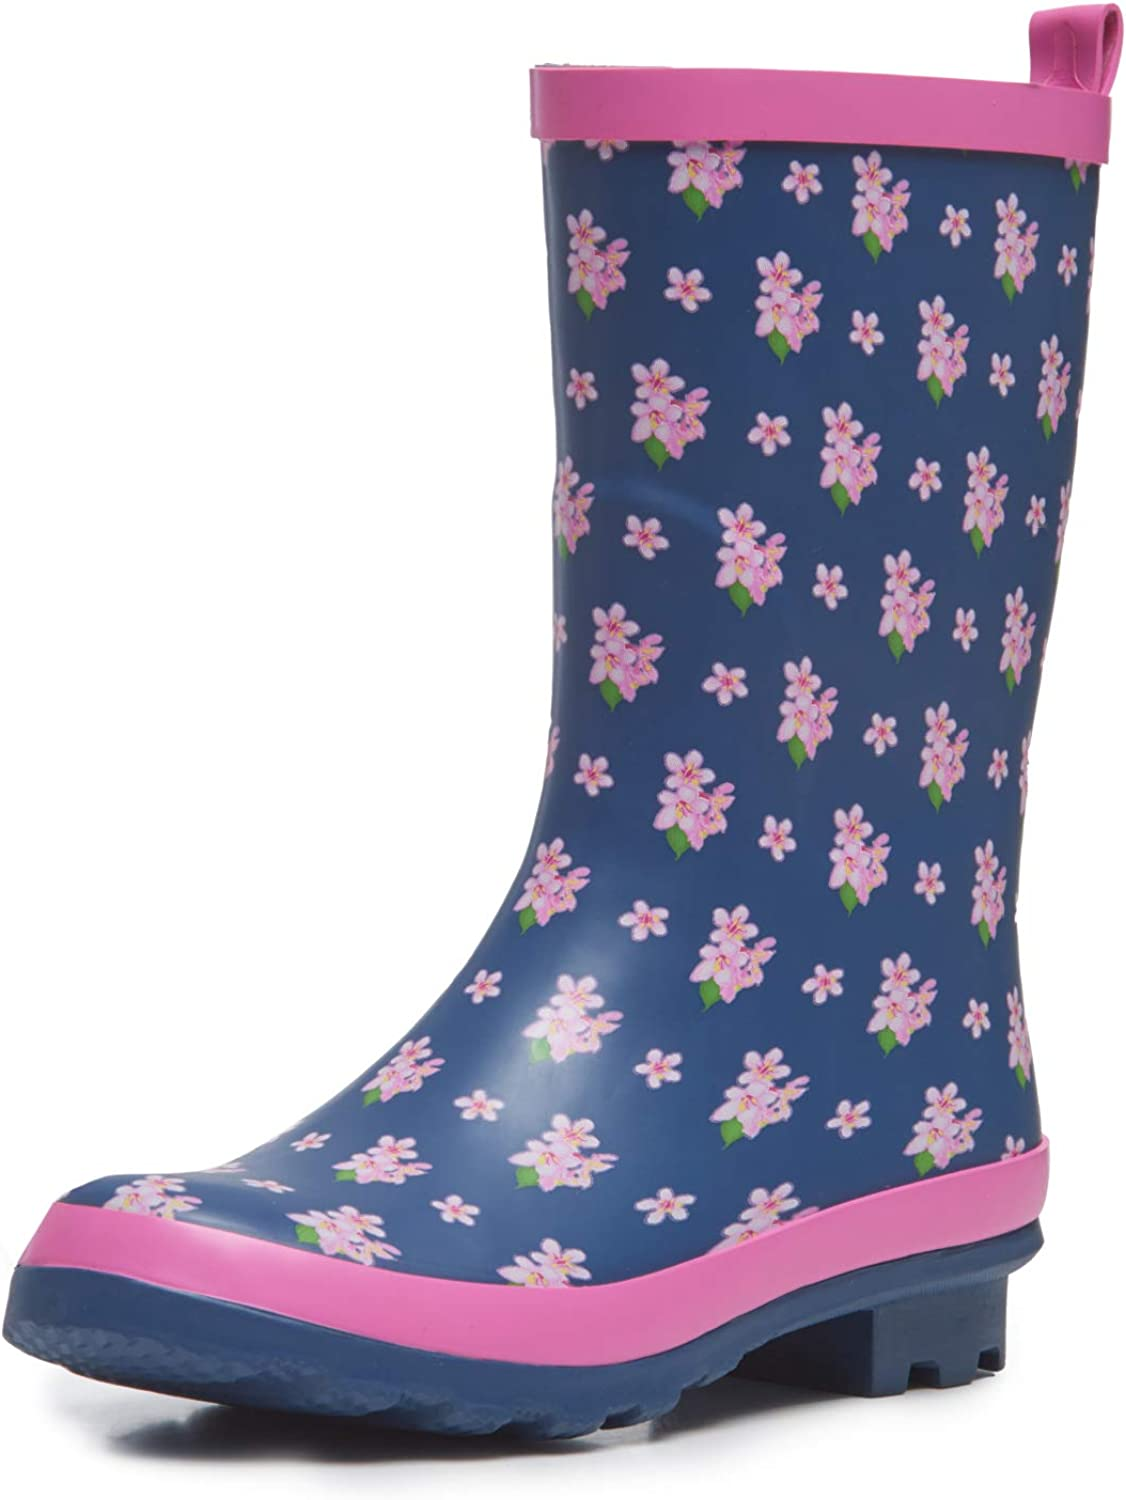 Laura Ashley Ladies High Cut Mid Calf Rubber Rain Boots, Lightweight Waterproof Booties for Women, Navy & Pink Floral, 1